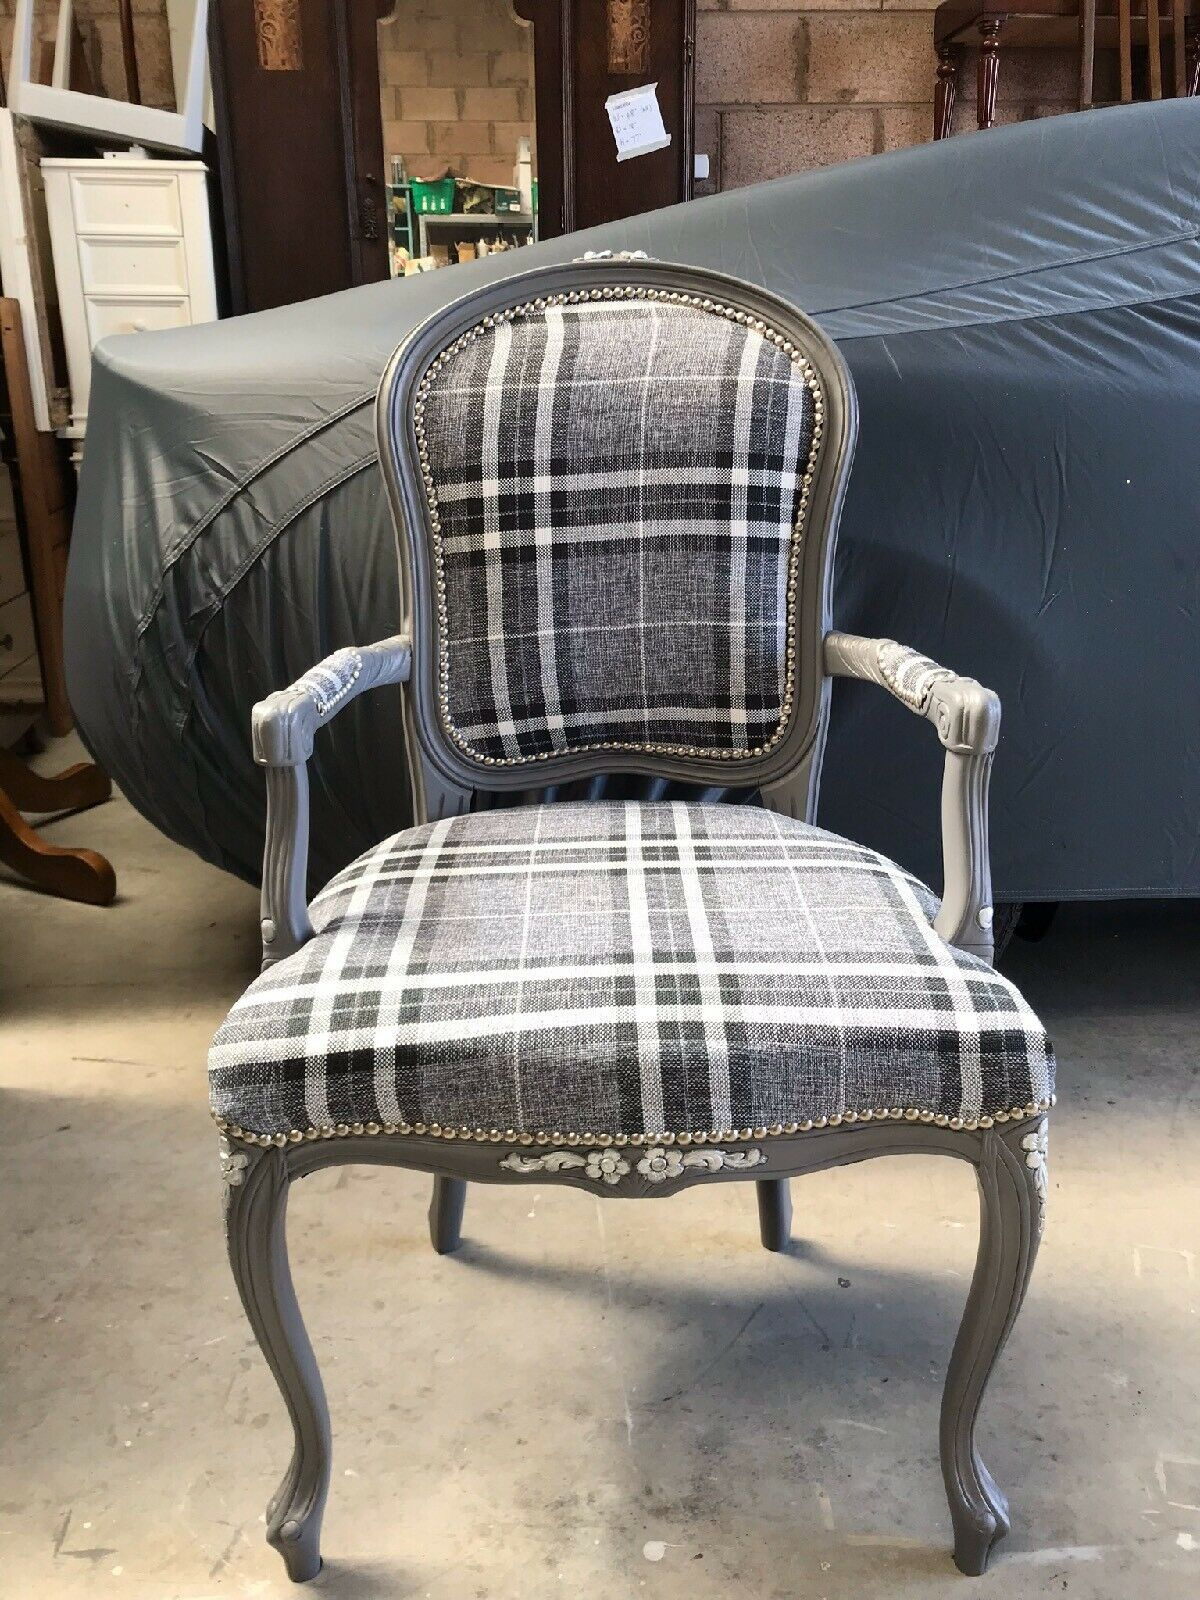 Kirsty Completed Her Project Using Louise20 Light Grey Tartan Fabric